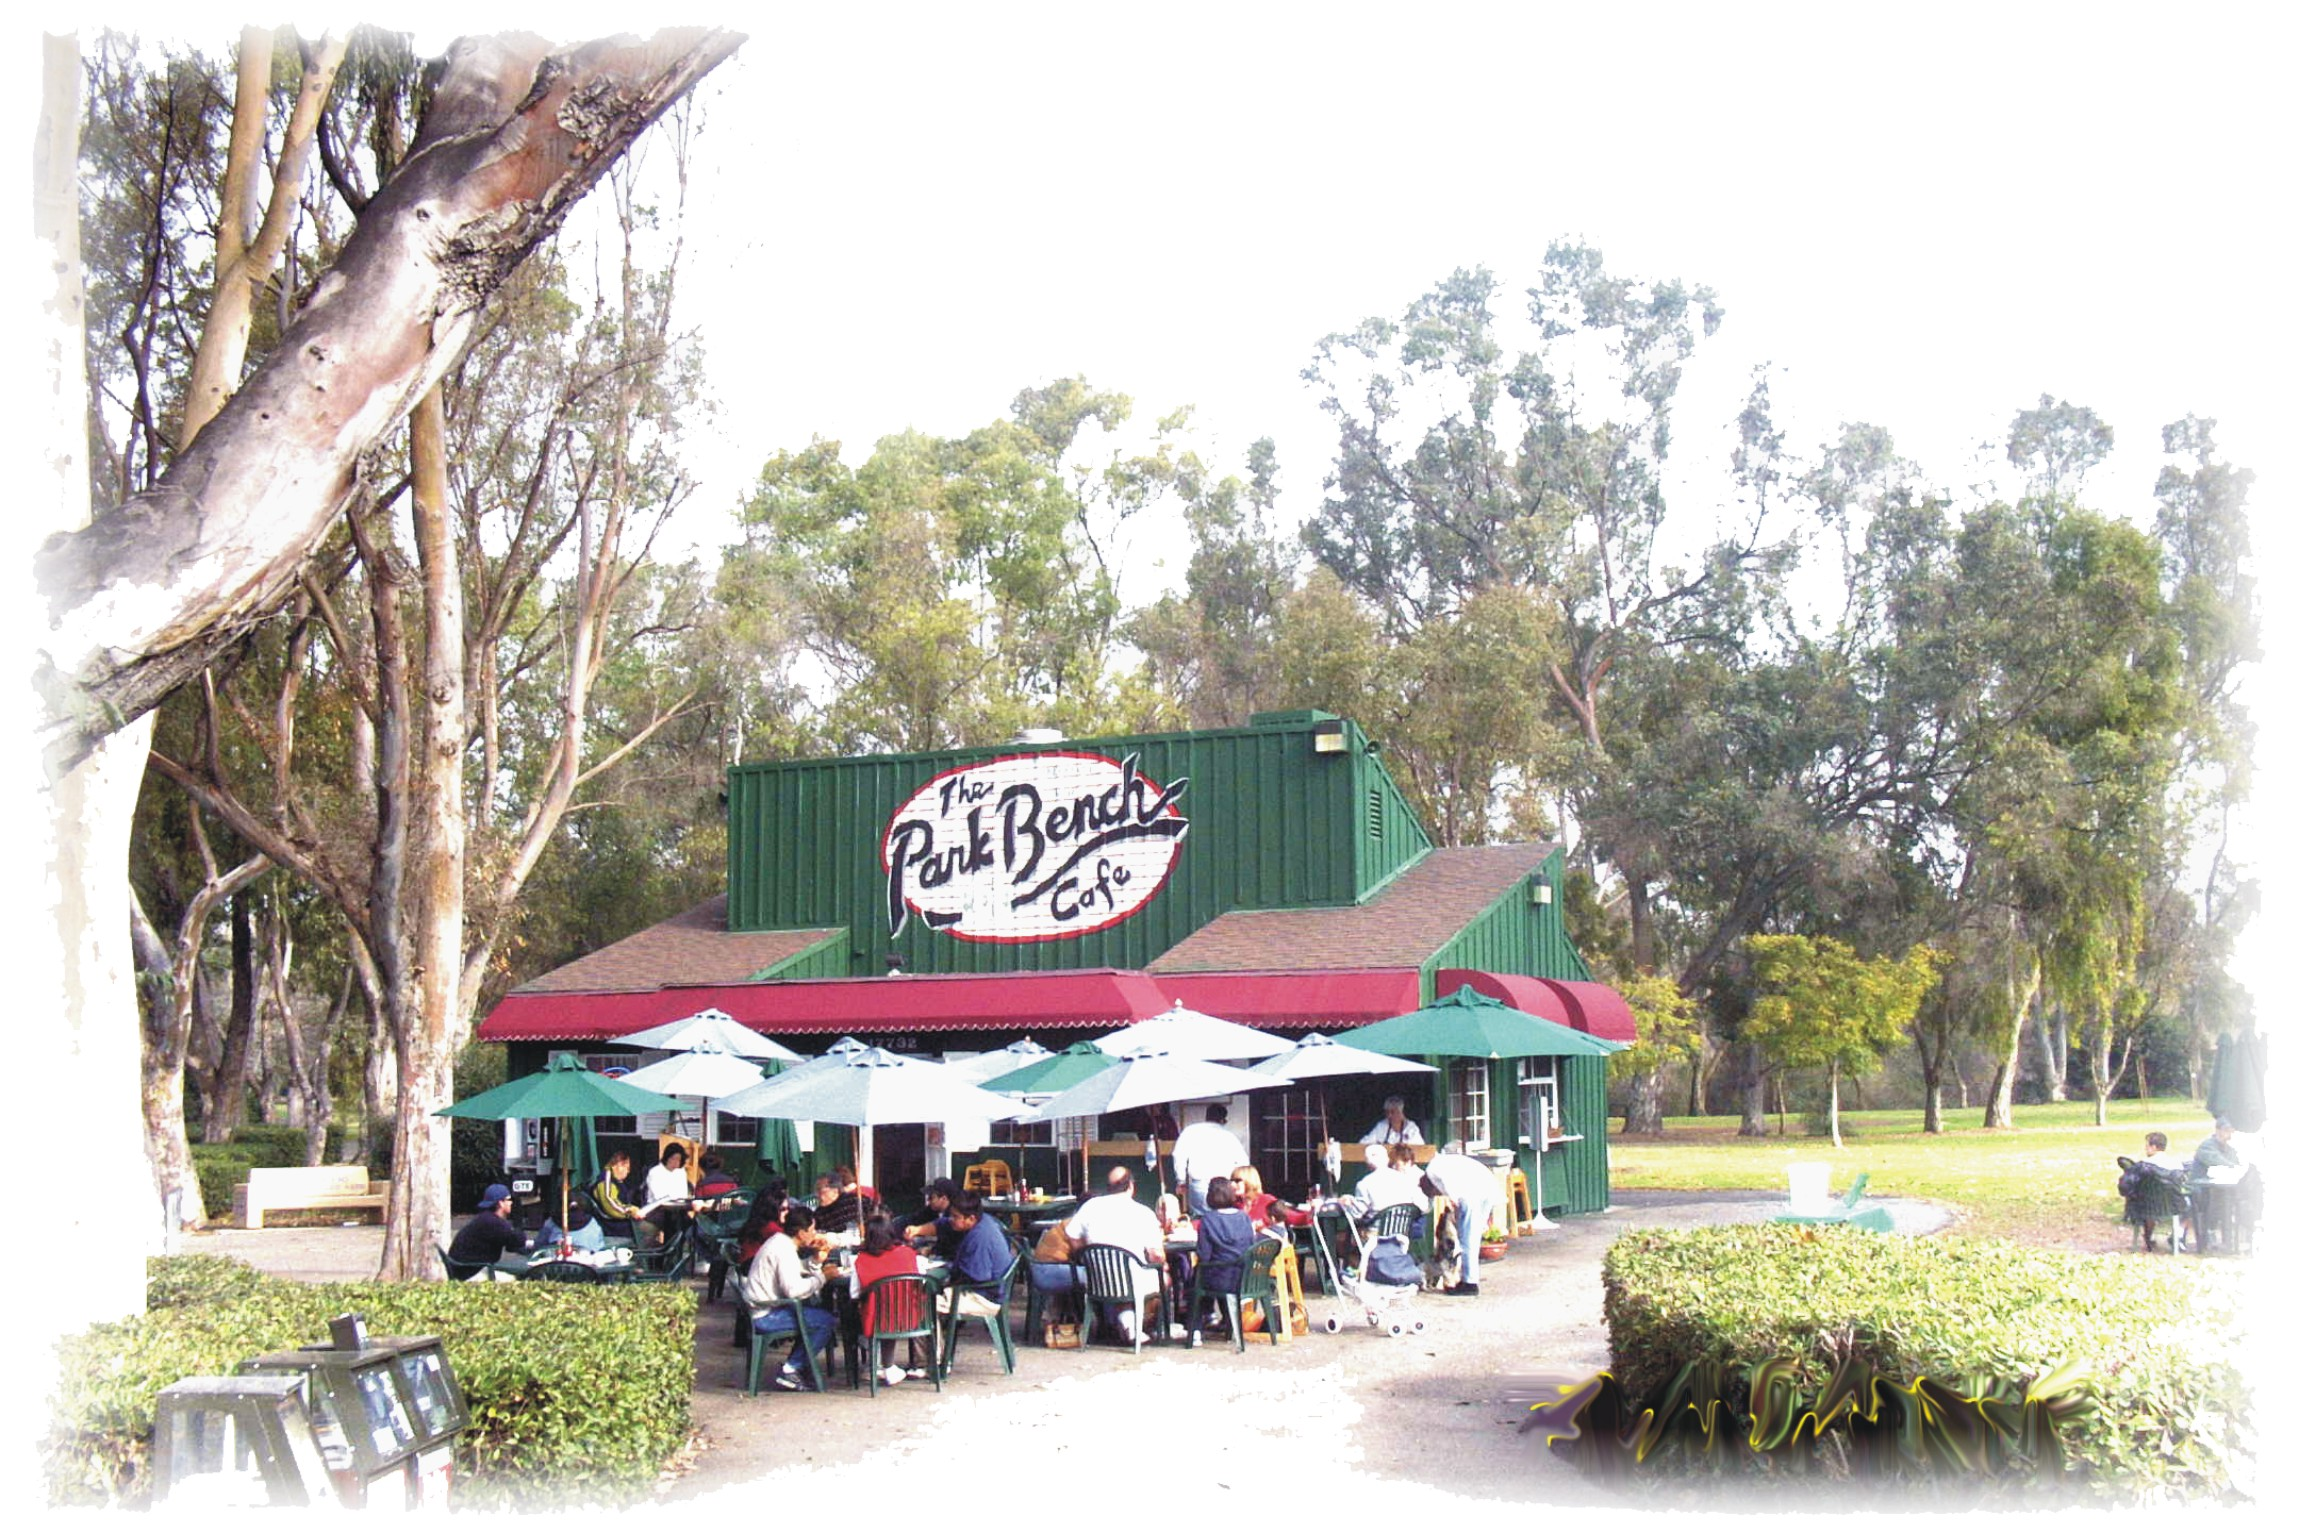 Park Bench Cafe | Huntington Beach Central Park